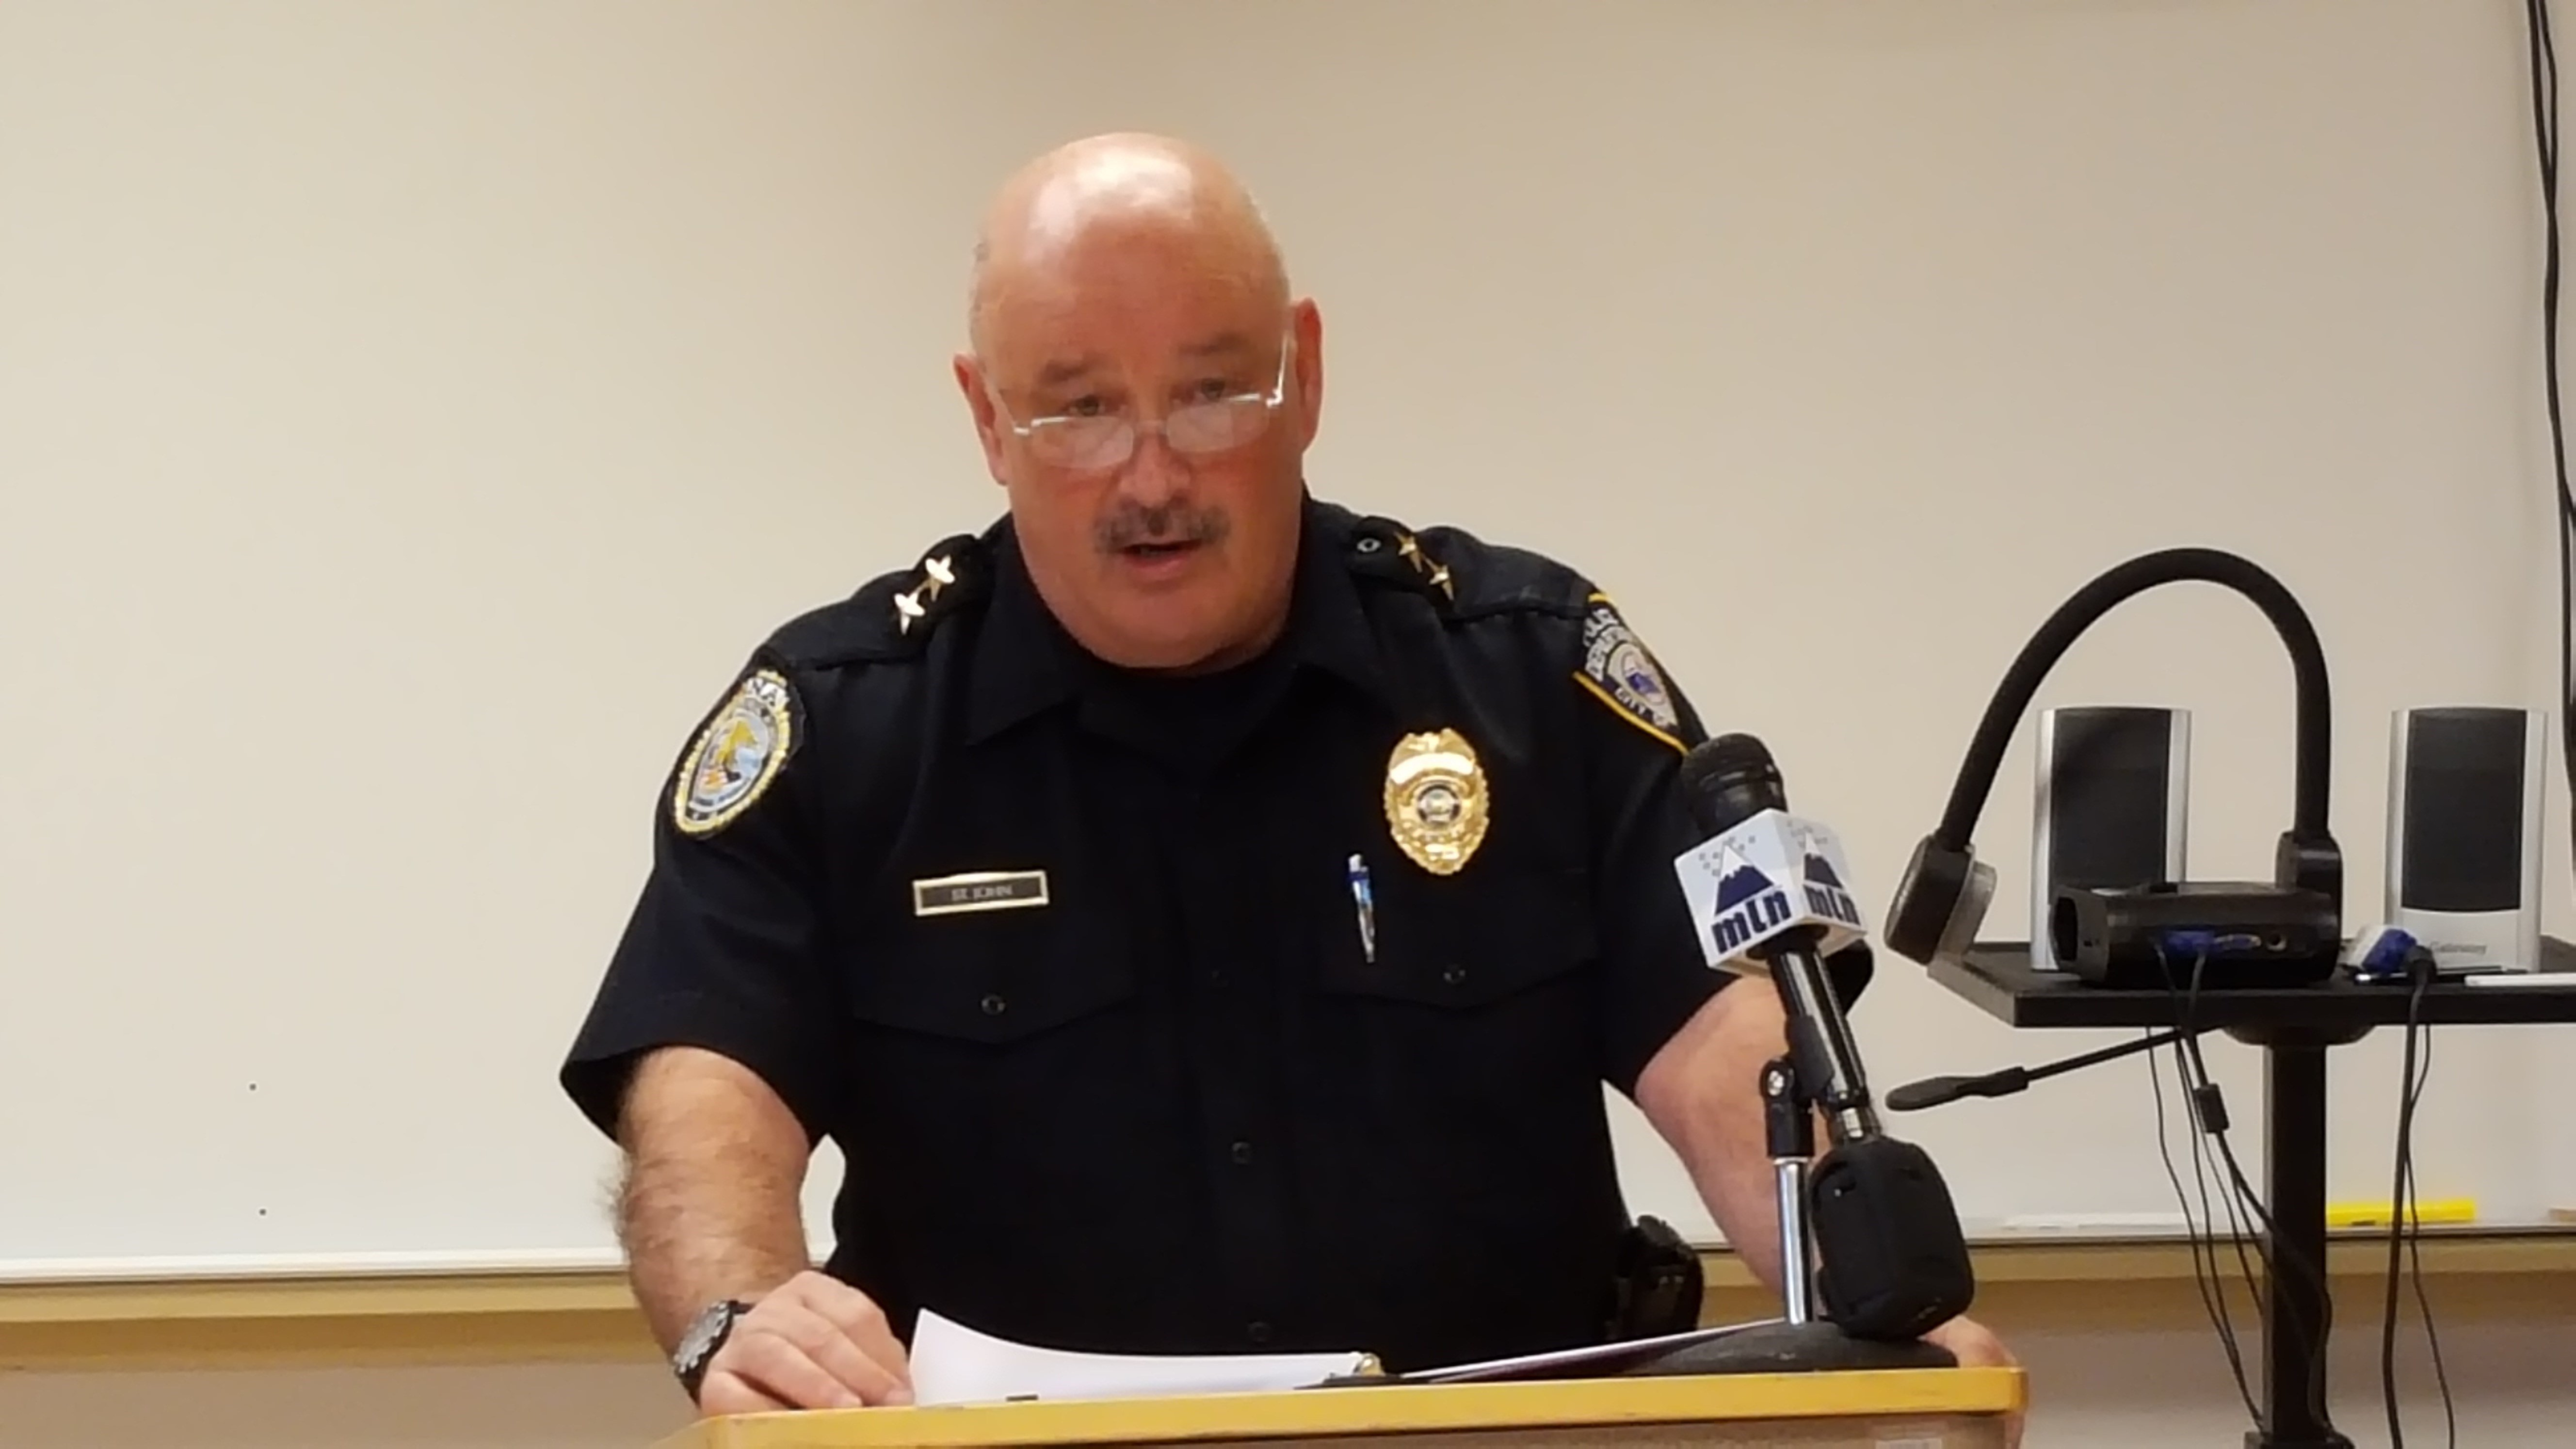 Chief St. John addressed simialr unsubstantiated rumors at a press conference last week. (MTN News)